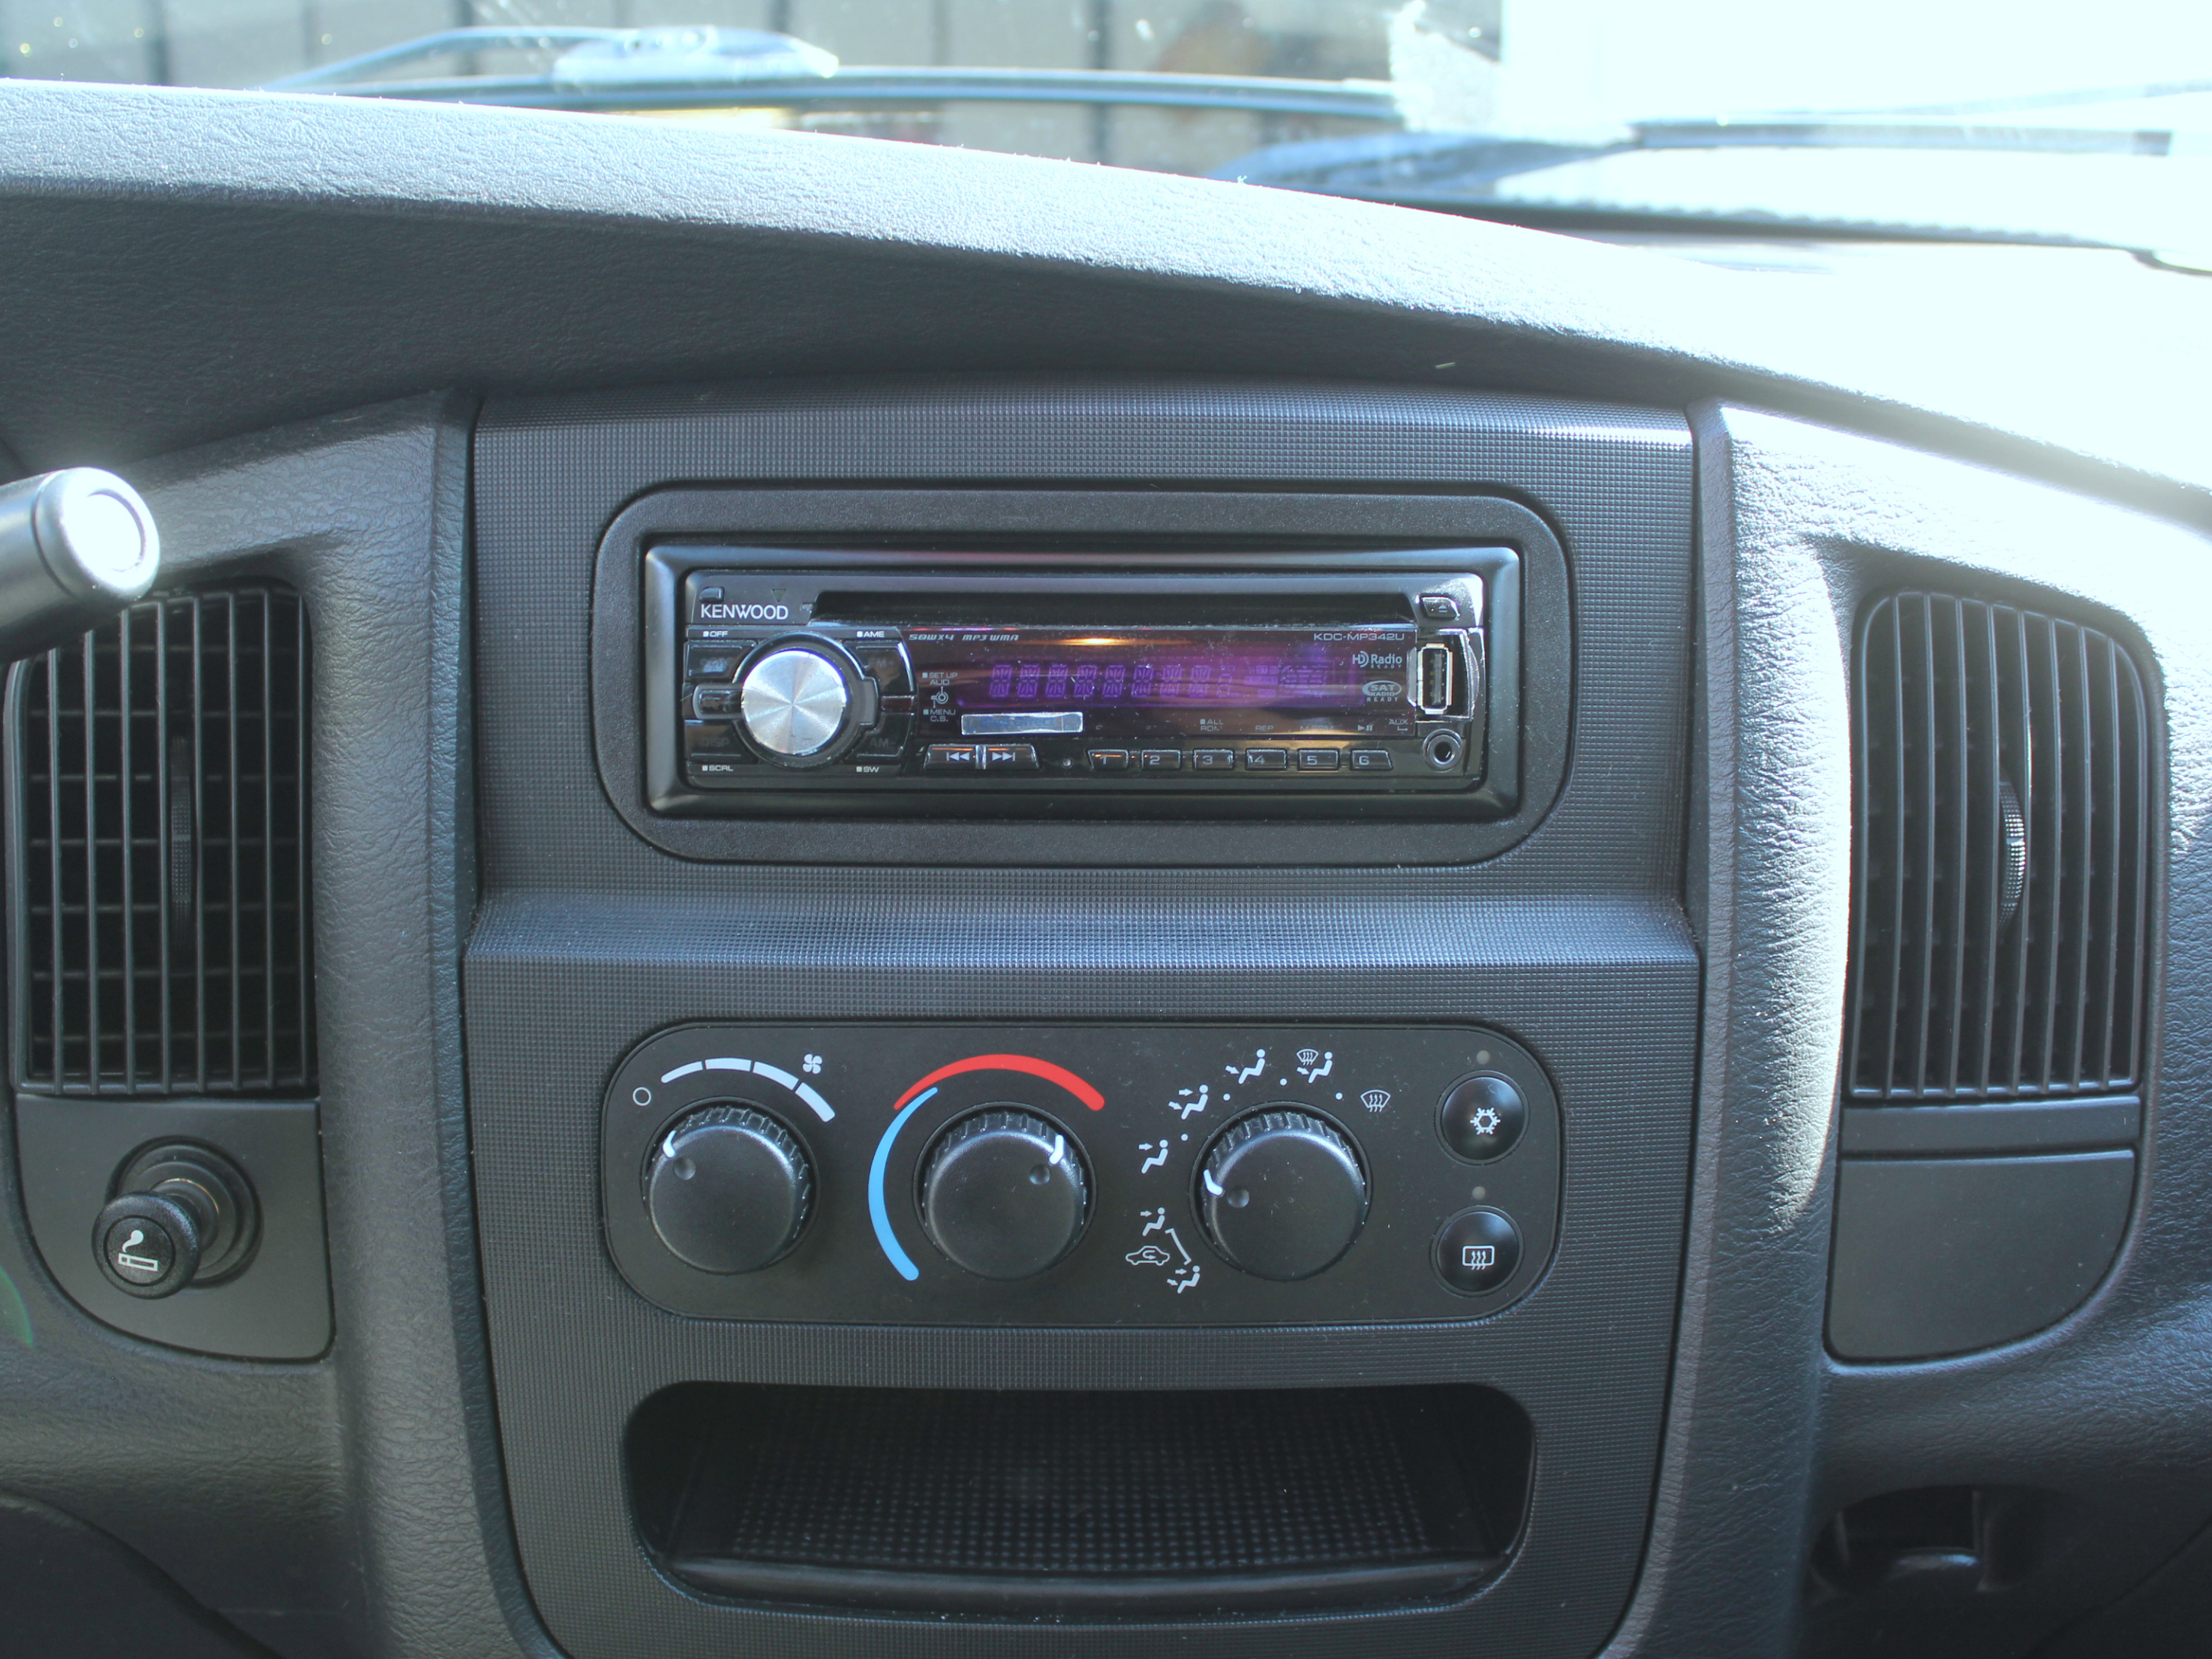 2002 2008 Dodge Ram 1500 Stereo Head Unit Replacement